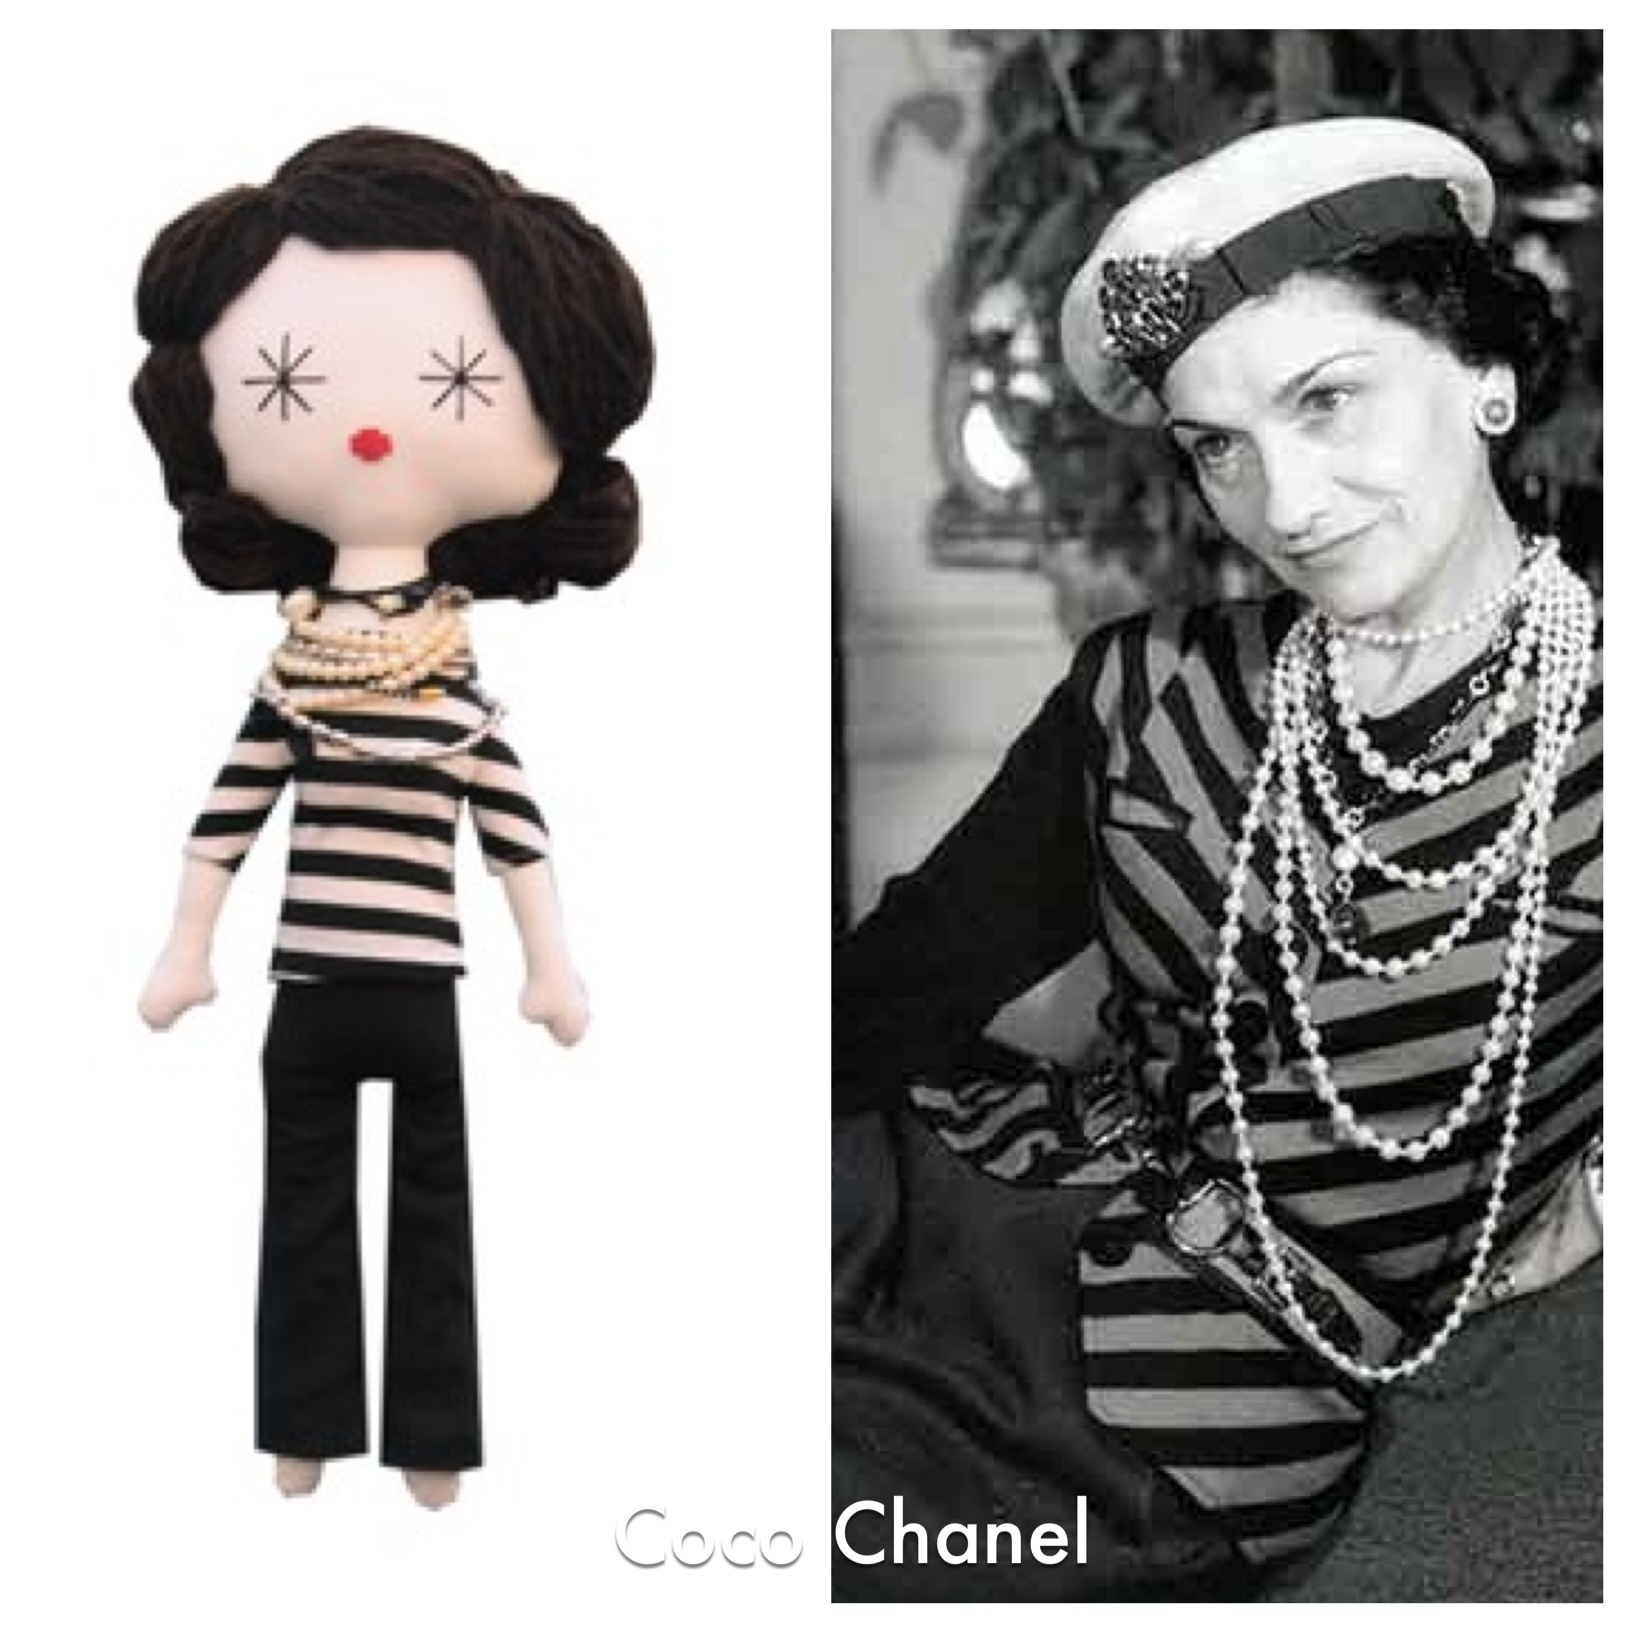 Laloushka Coco Chanel doll